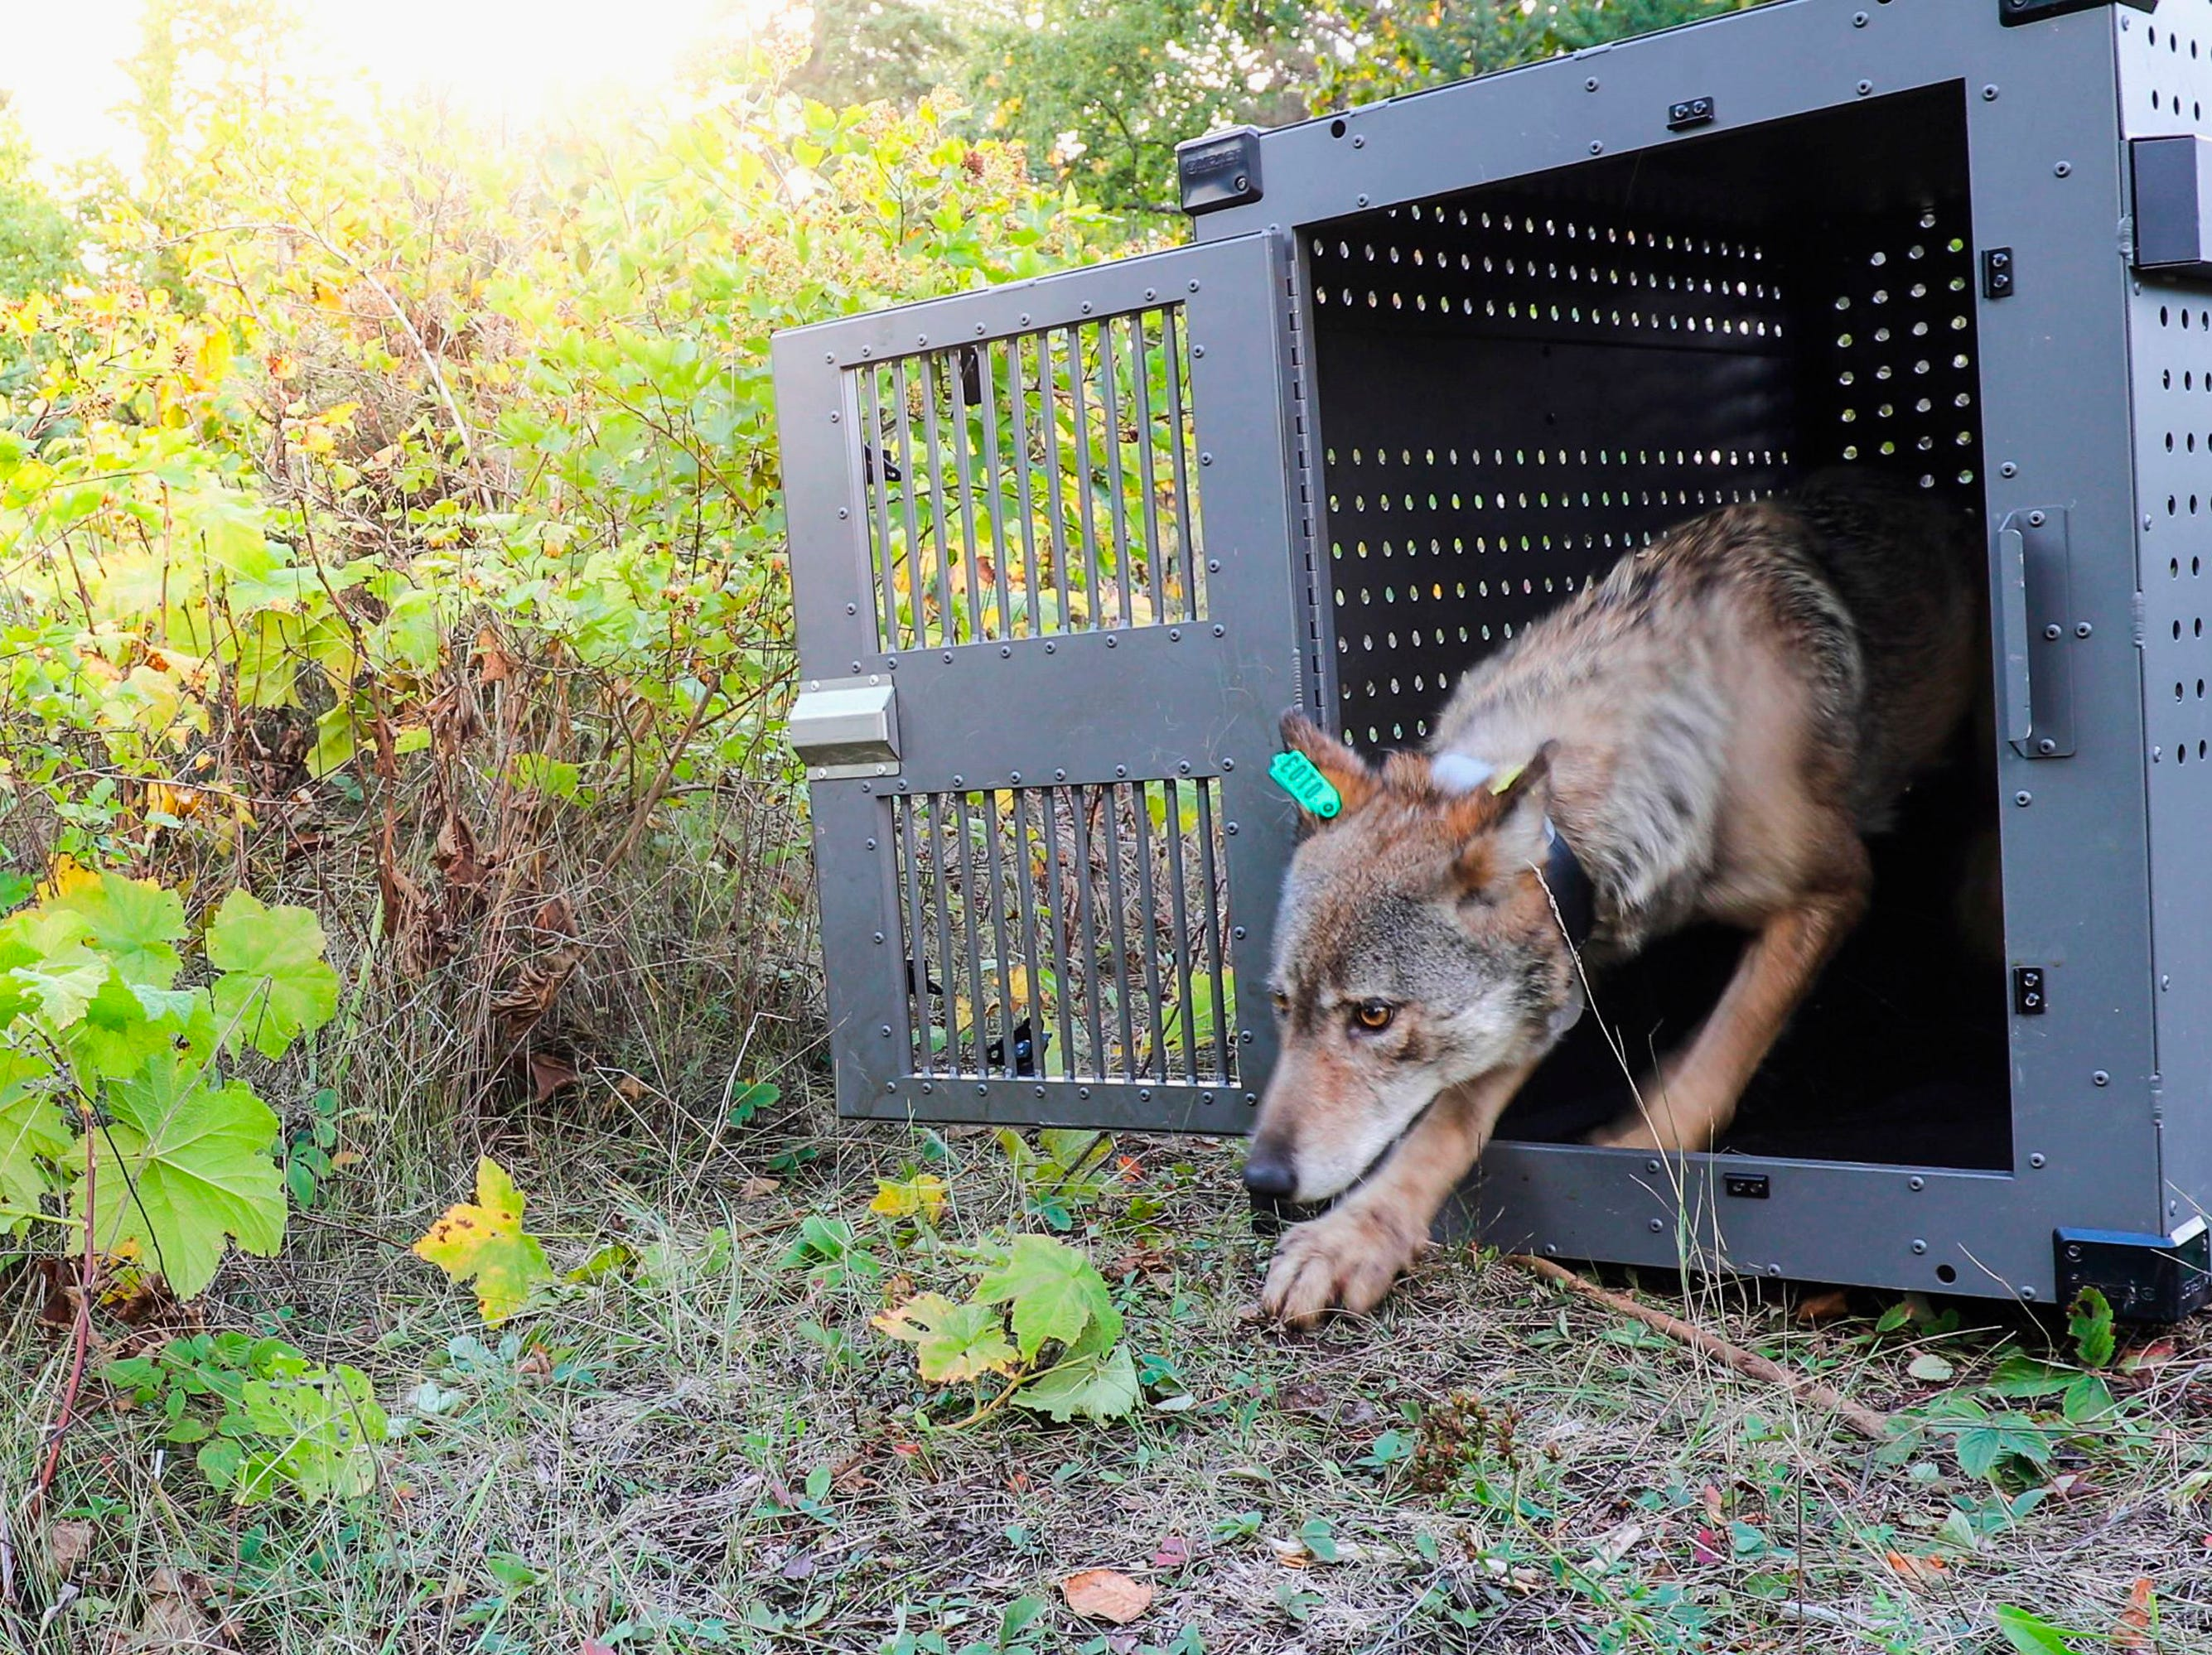 This Wednesday, Sept. 26, 2018, photo provided by the National Park Service shows a 4-year-old female gray wolf emerging from her cage at Isle Royale National Park in Michigan. The wolf along with a a 5-year-old male were flown to the park Wednesday from the Grand Portage Indian Reservation in Minnesota to kick off a multi-year effort to restore the predator species on the Lake Superior island chain.